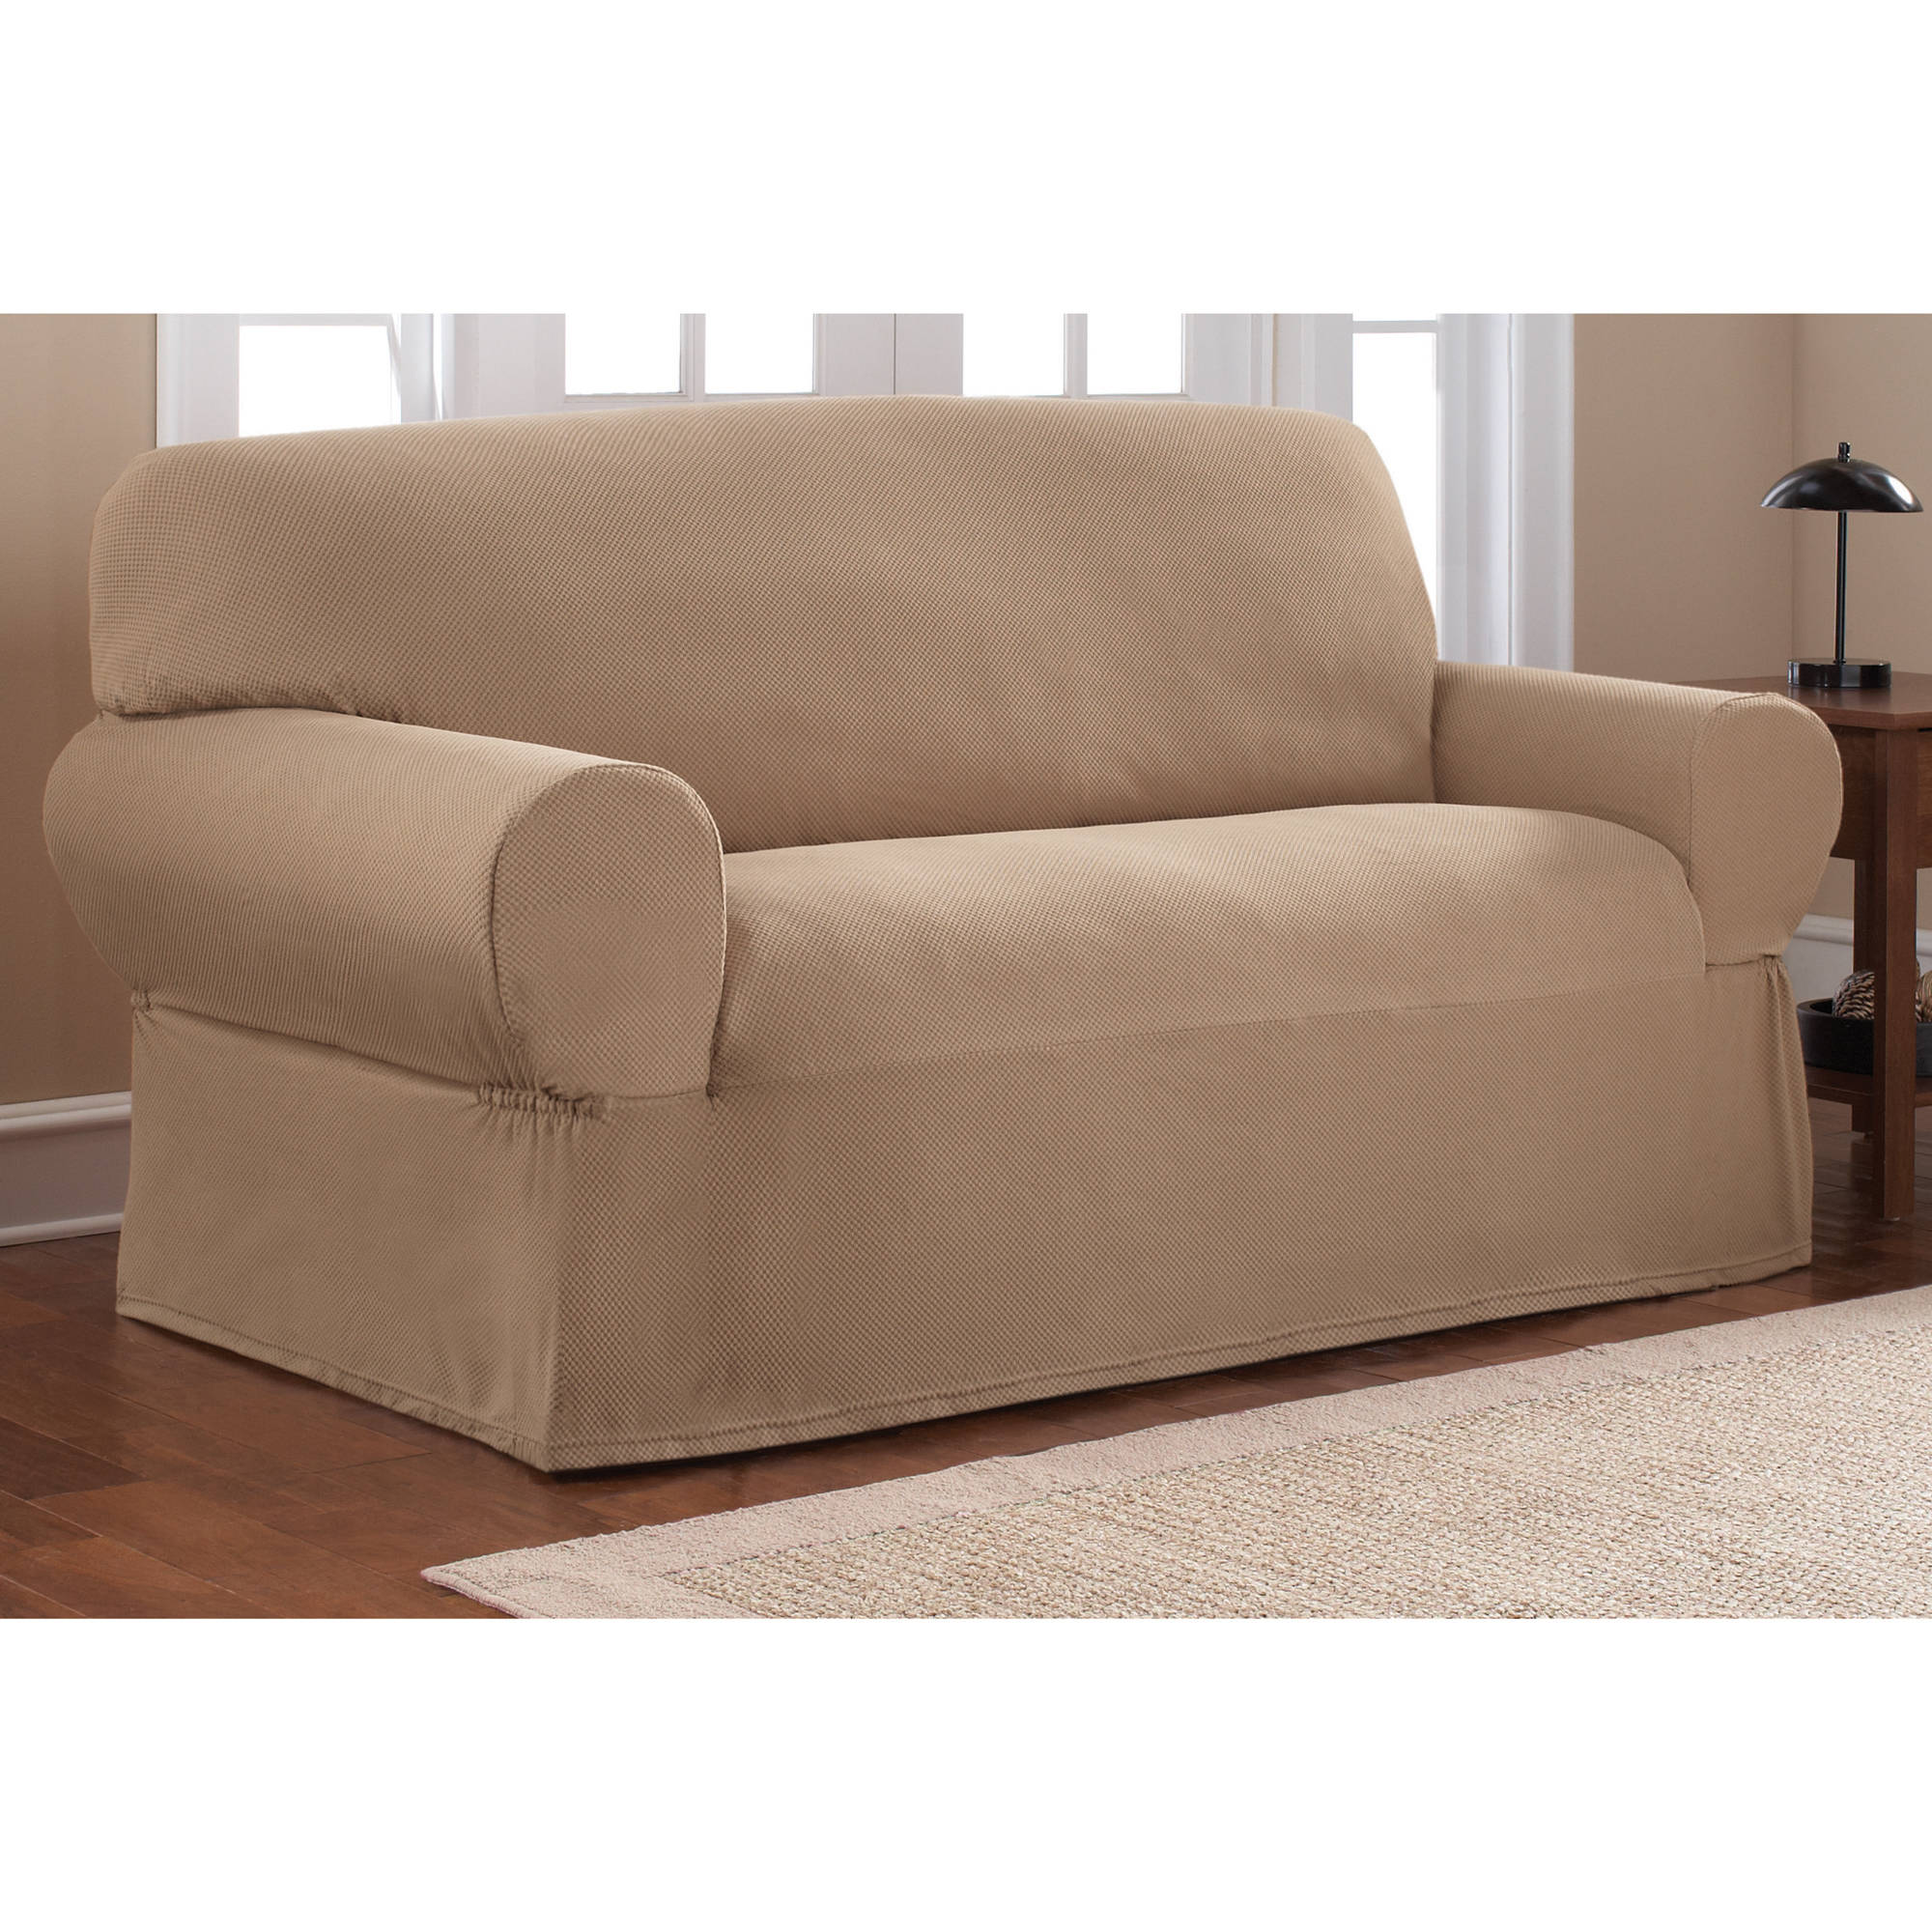 Sofa loveseat covers reclining loveseat slipcover adapted for dual recliner love seat thesofa Loveseat slip cover